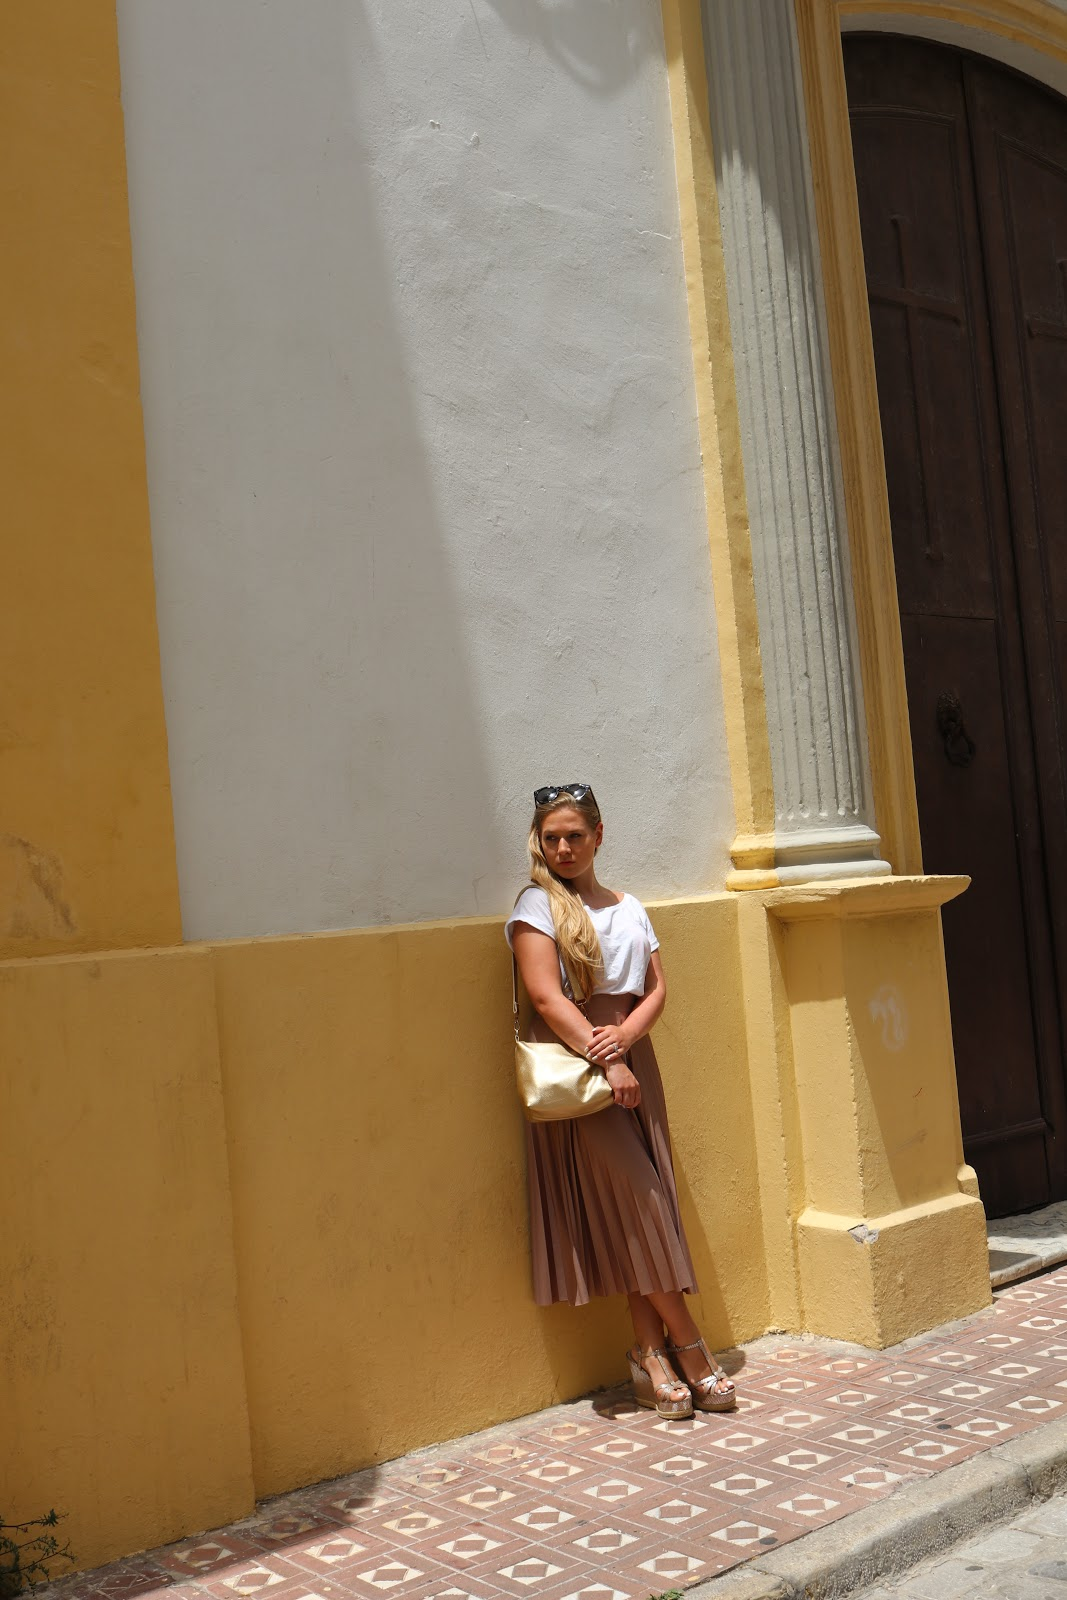 Blonde girl wearing metallic skirt against yellow walls in Tarifa, Spain